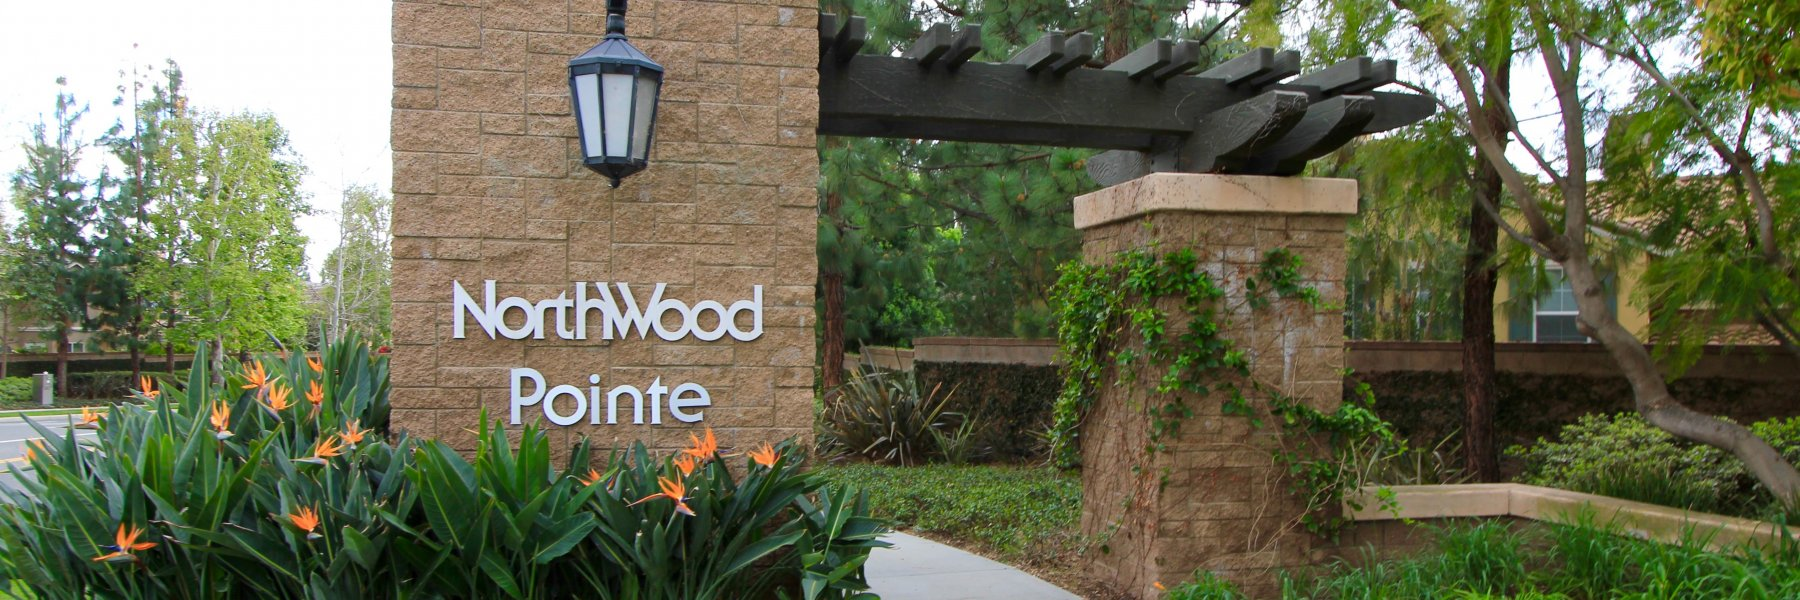 Northwood Pointe is a community of homes in Irvine California